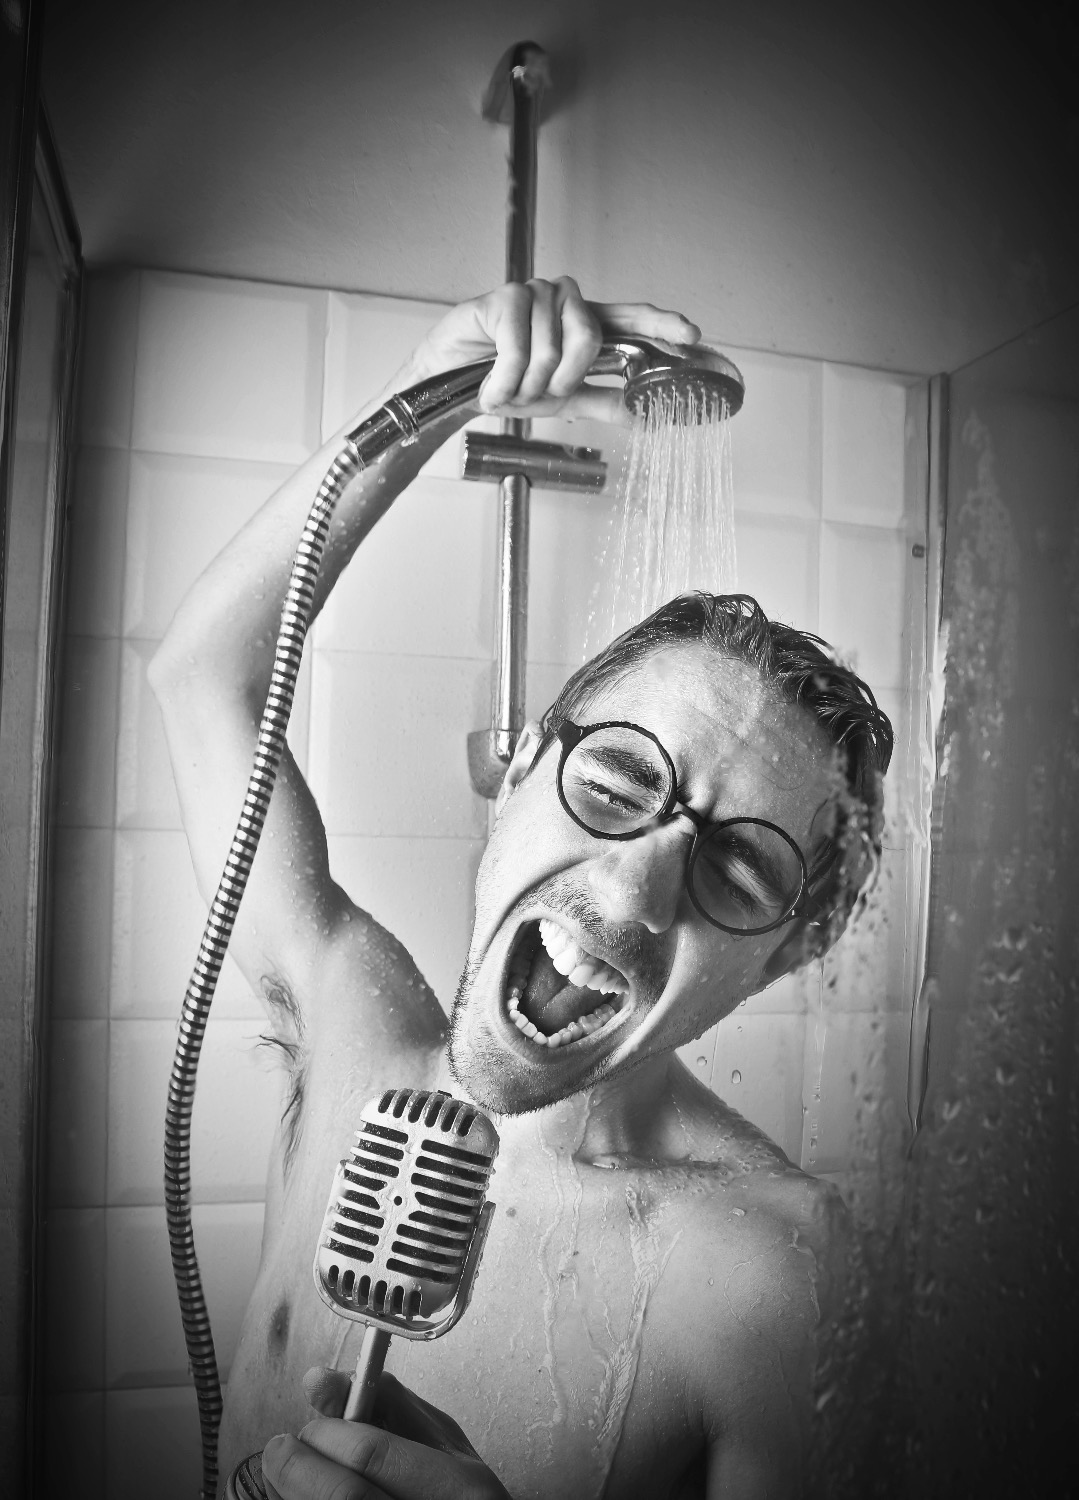 Man singing in the shower_edited